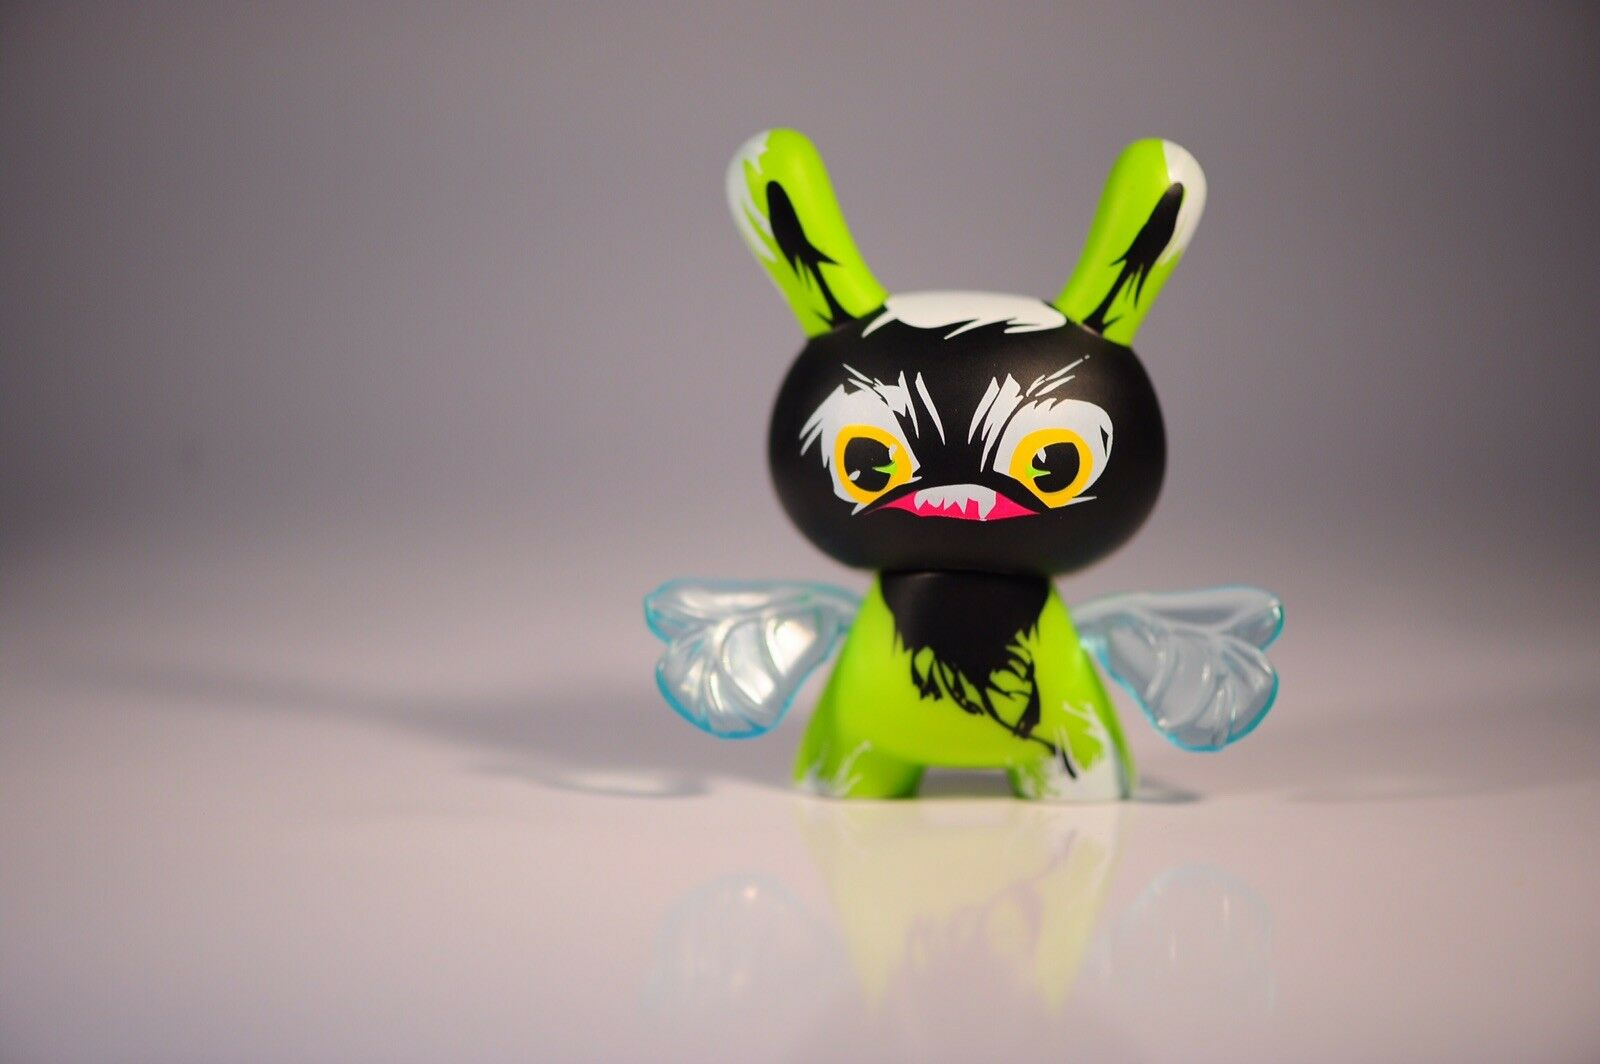 Kidrobot dunny 2012 New The Drone Attaboy 1 1 1 40j 191b96